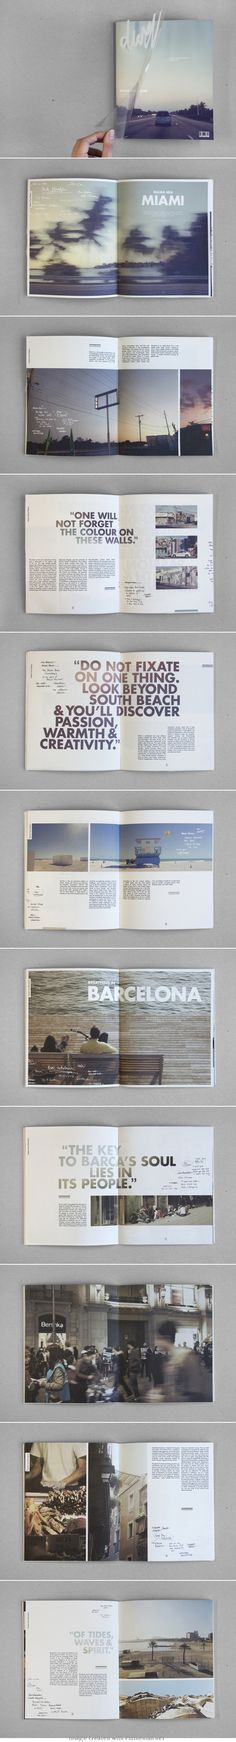 Dwell, Coastal Cities Revisited by Sidney Lim Yi Xiang